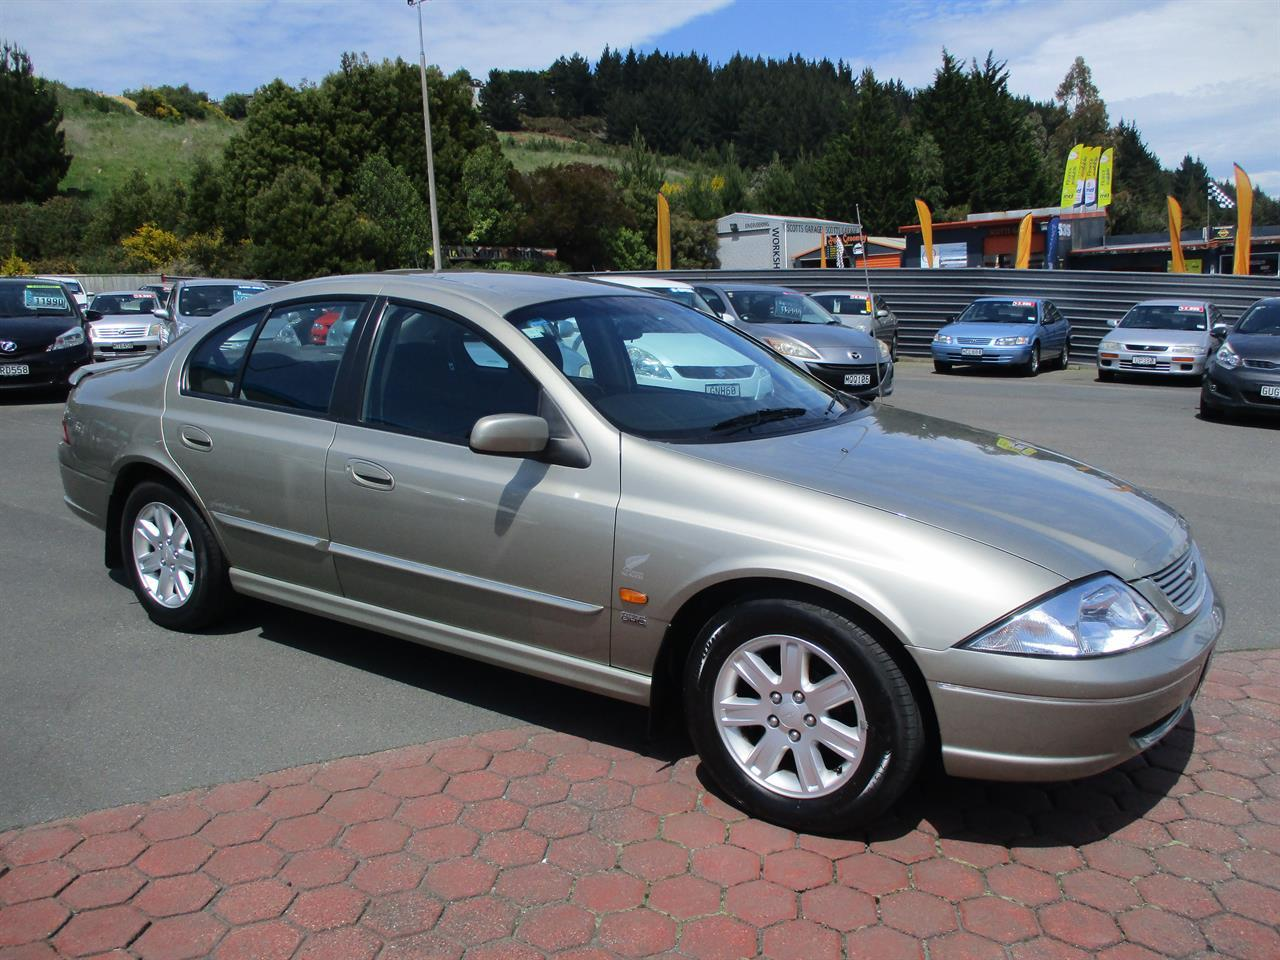 image-1, 2001 Ford Falcon AUII HERITAGE SERIES at Dunedin